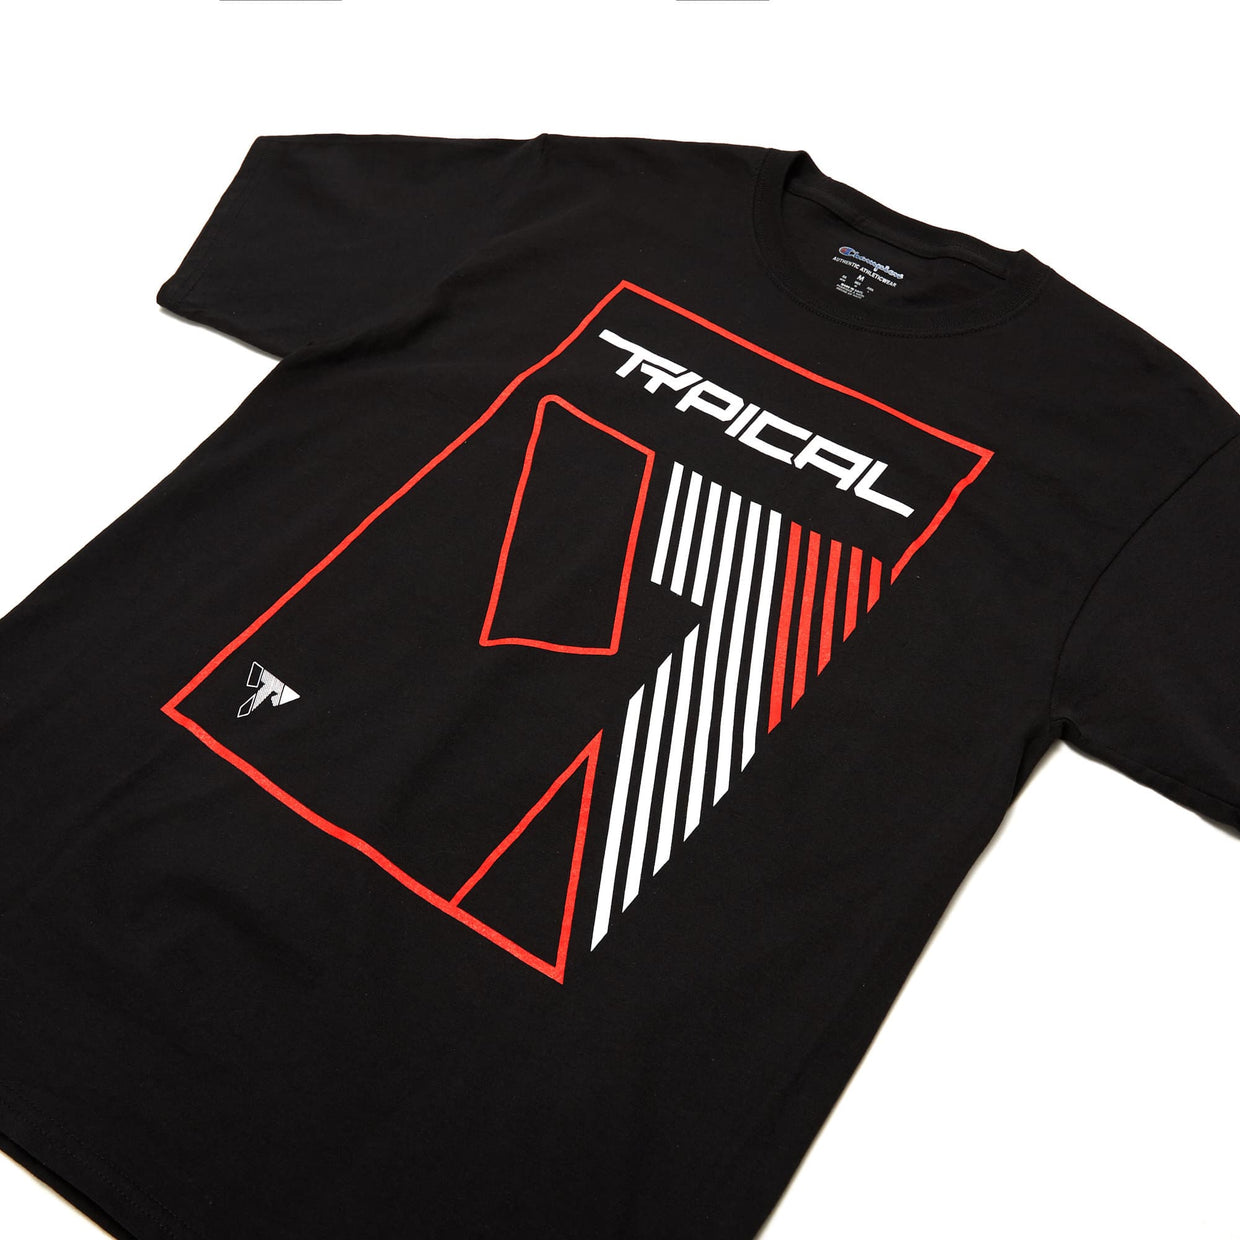 Typical 'Fragments' Champion Tee